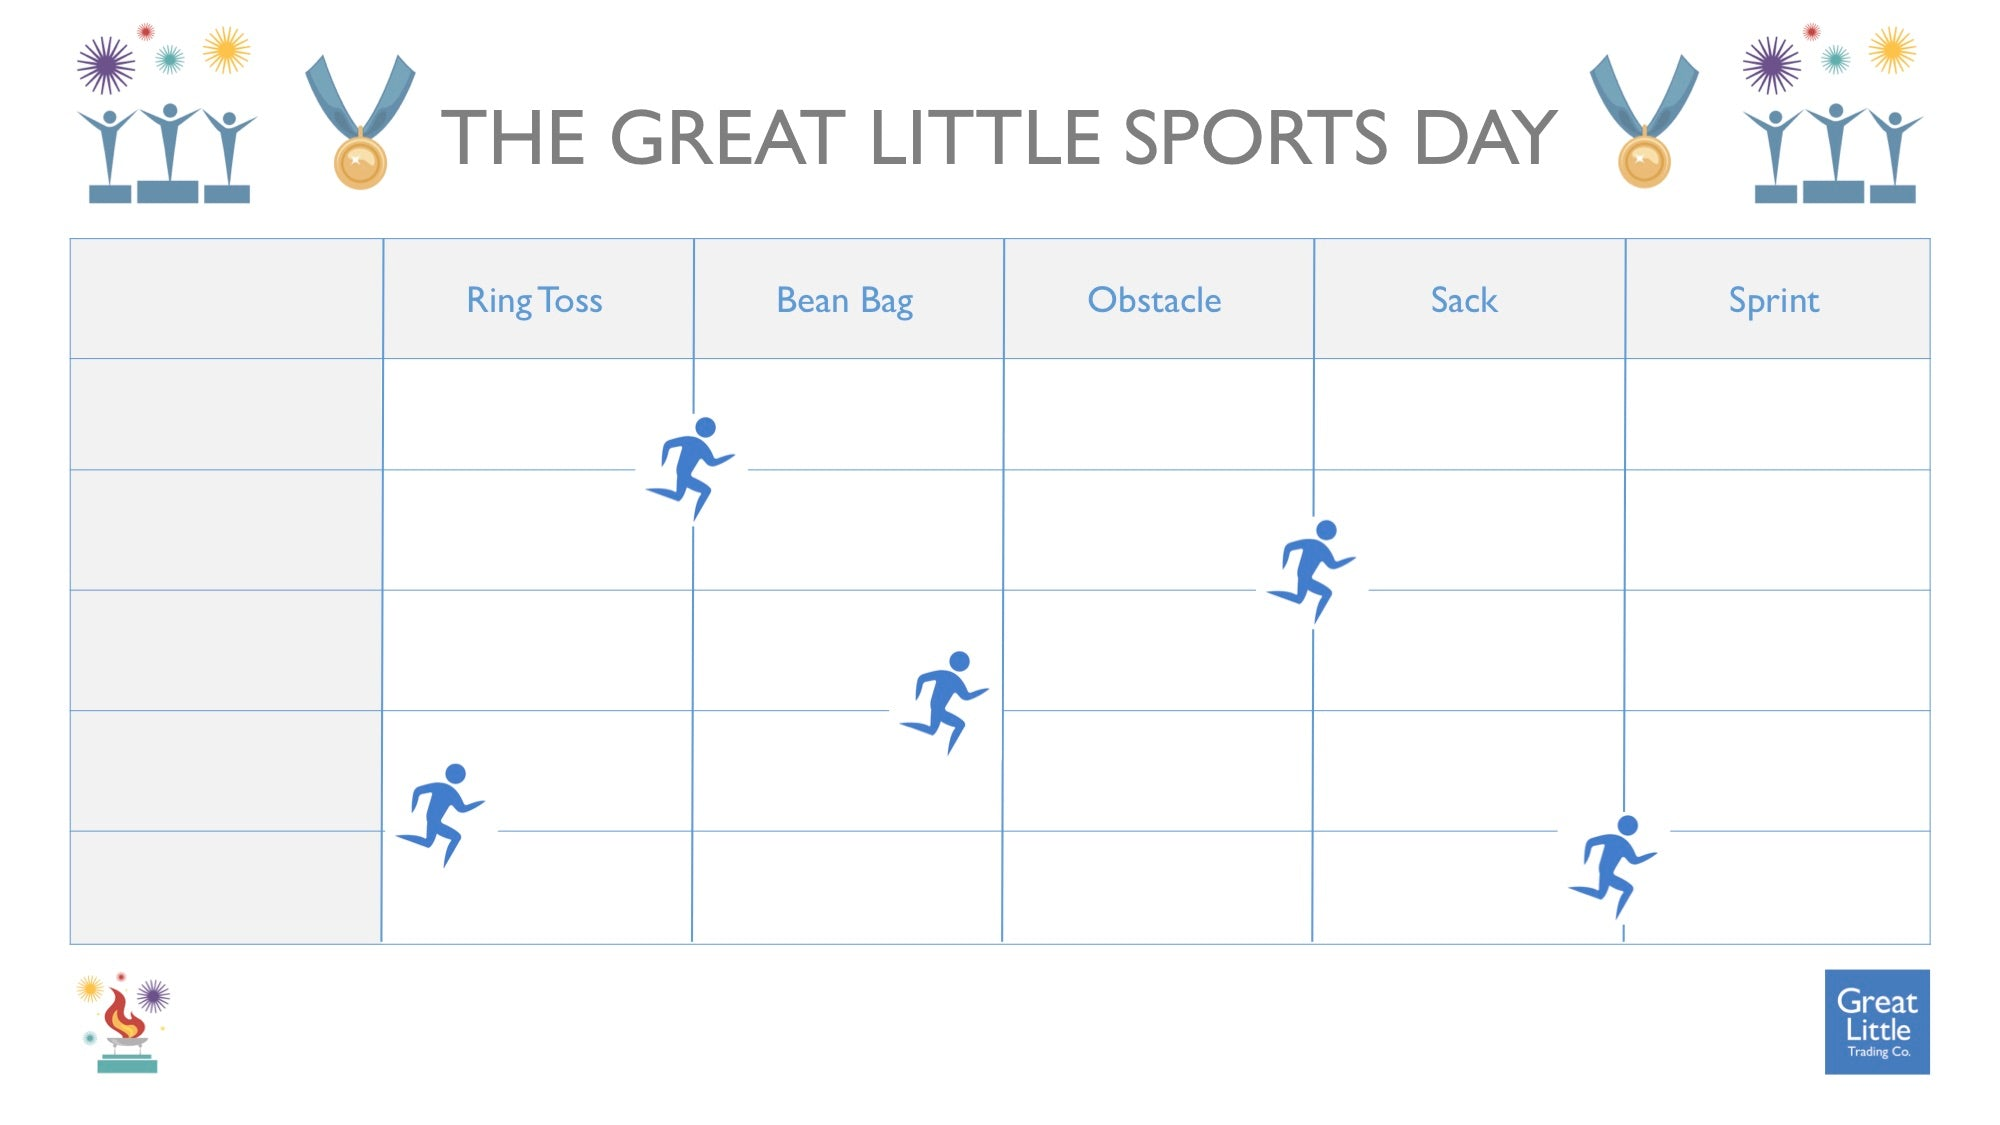 The Great Little Sports Day template